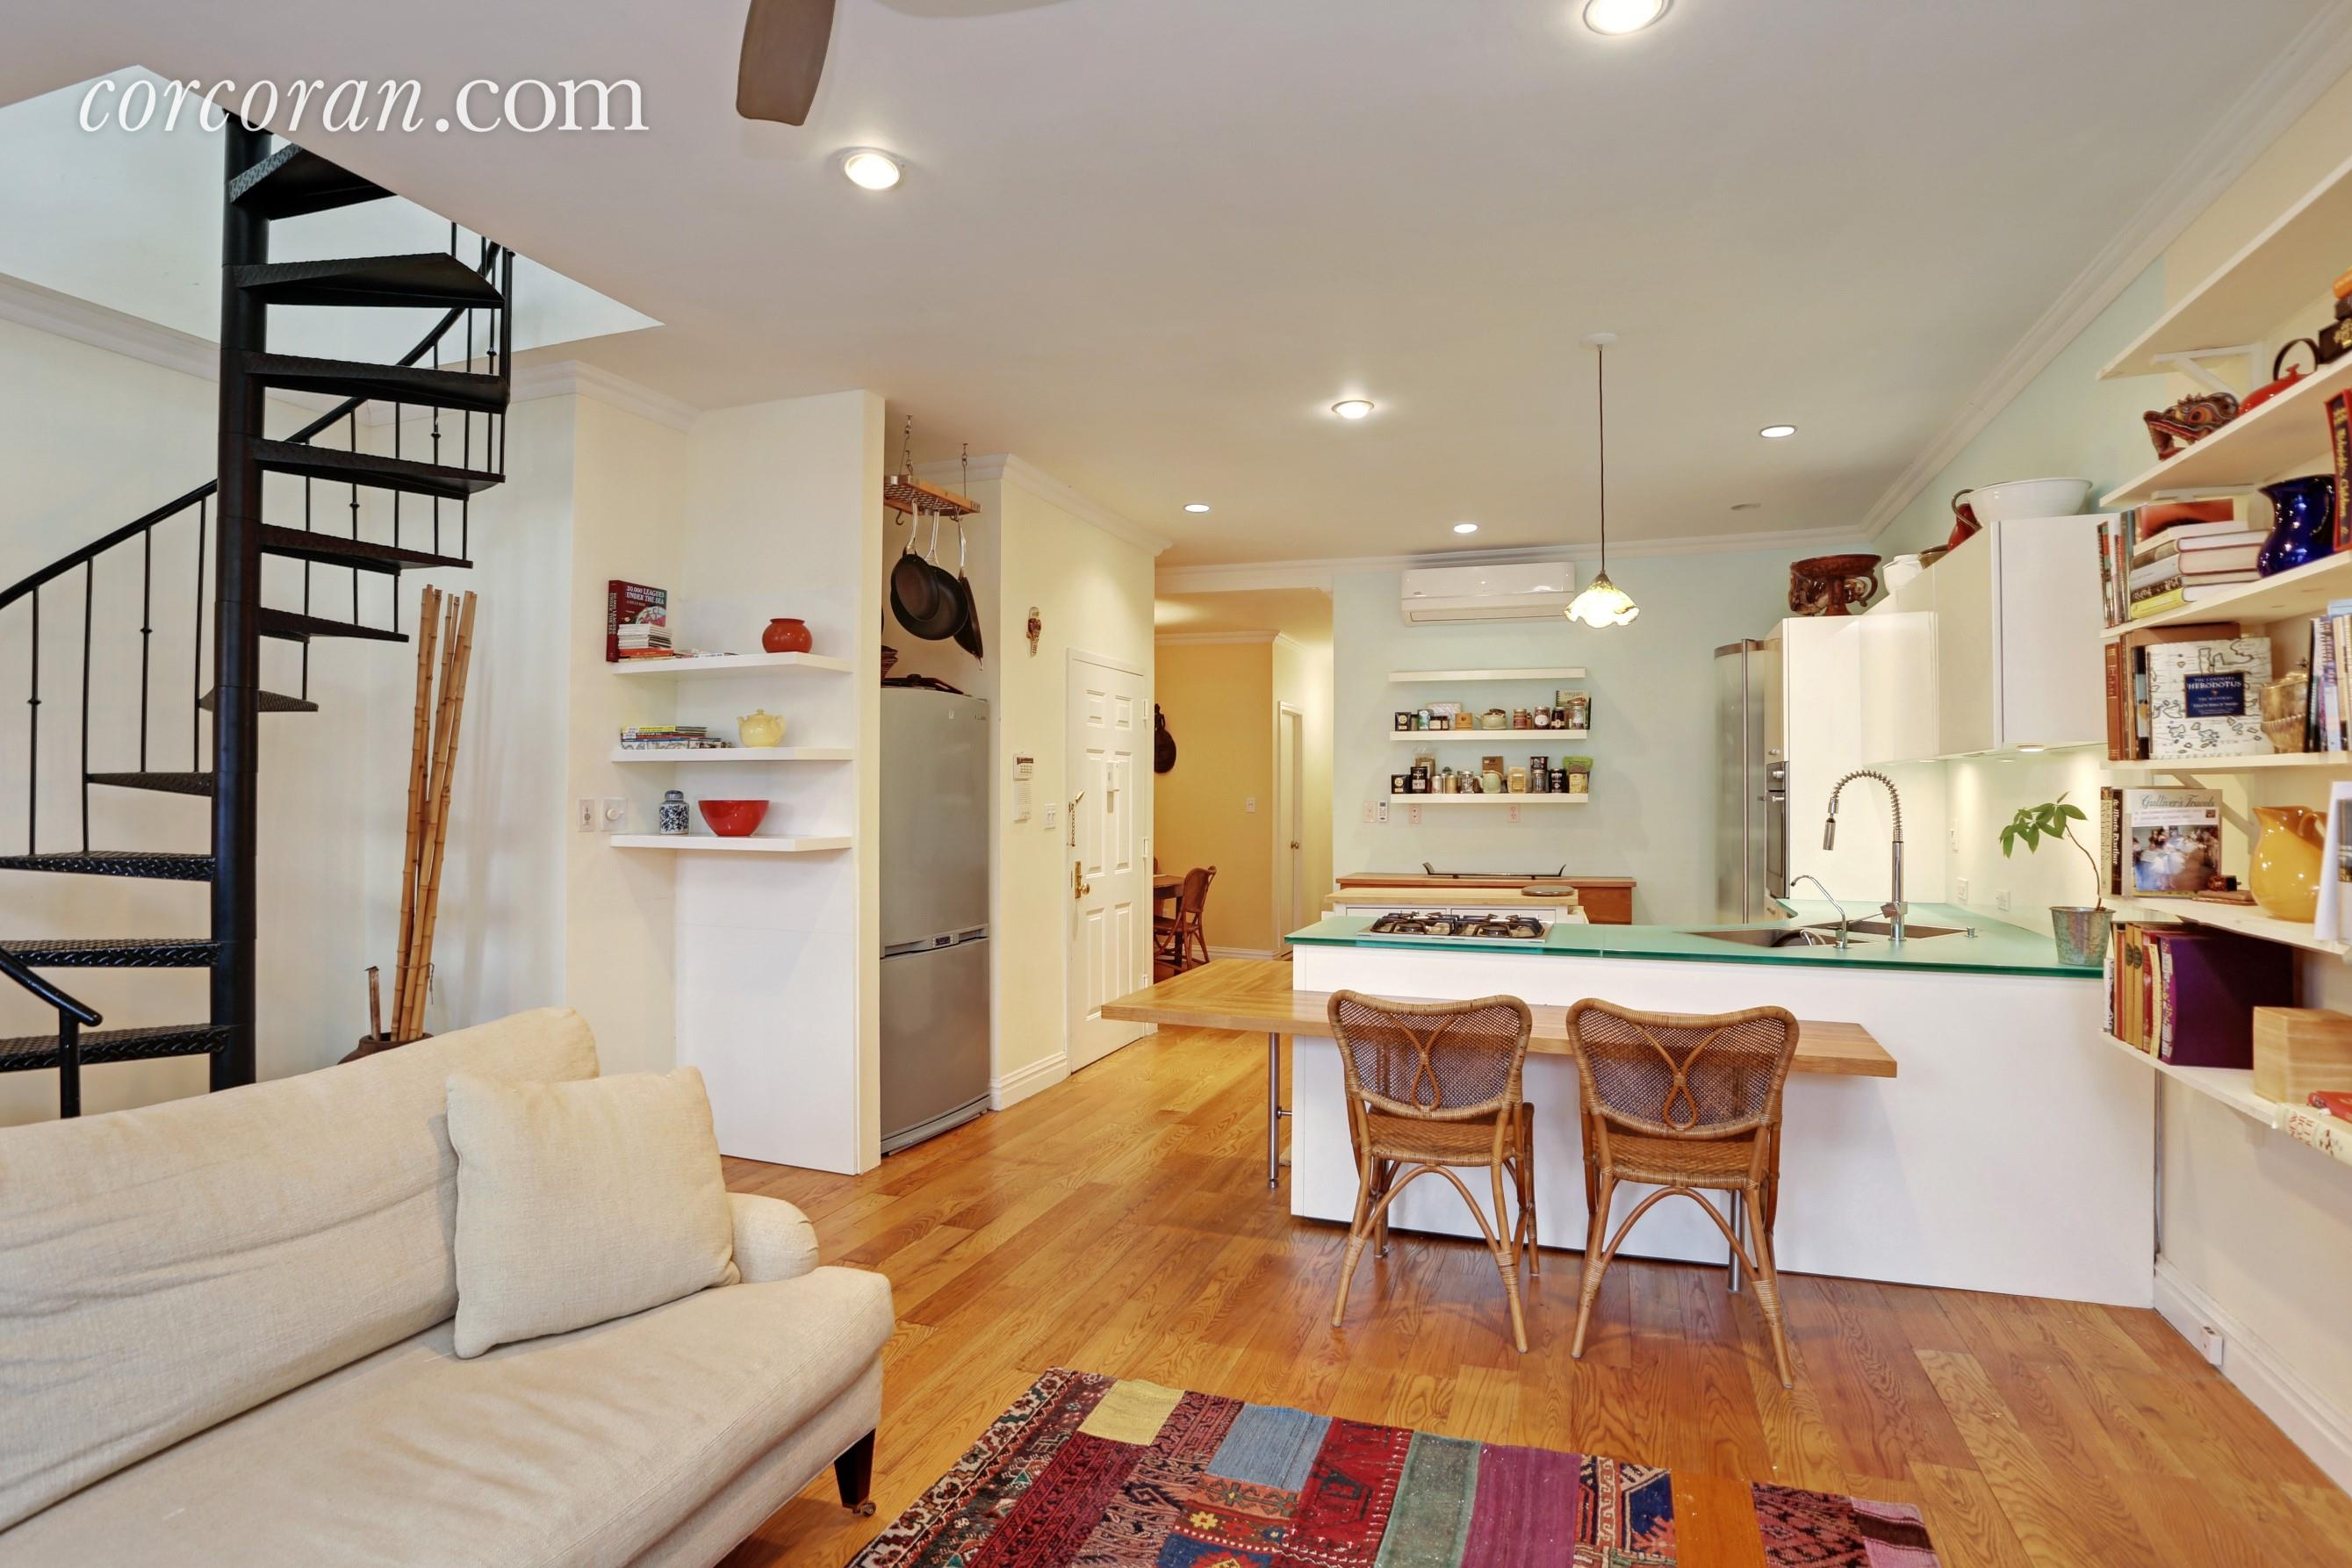 118 St. Marks Place, spiral staircase, duplex, kitchen, rental, park slope